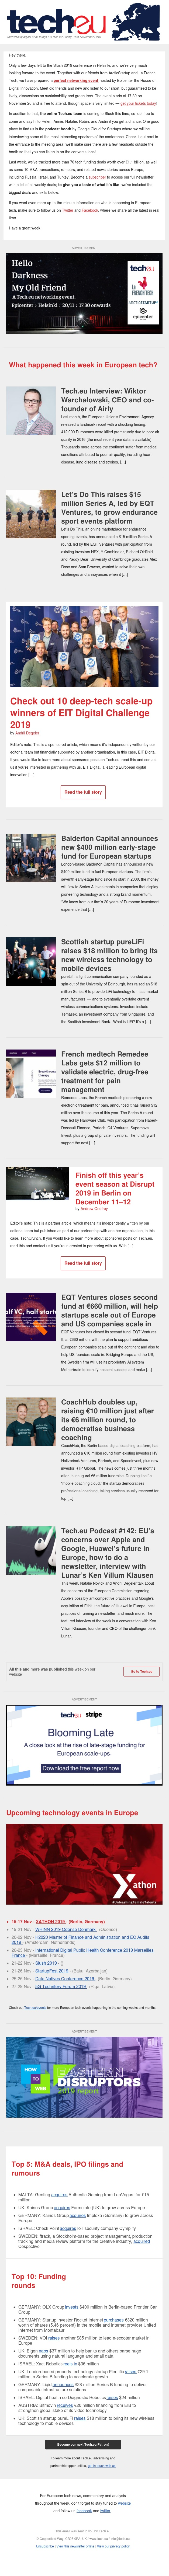 Tech.eu Newsletter #311: OLX pours $400 million in FCG, Balderton and EQT unveil big new funds, Voi nabs $85 million, Prosus tries to buy Just Eat